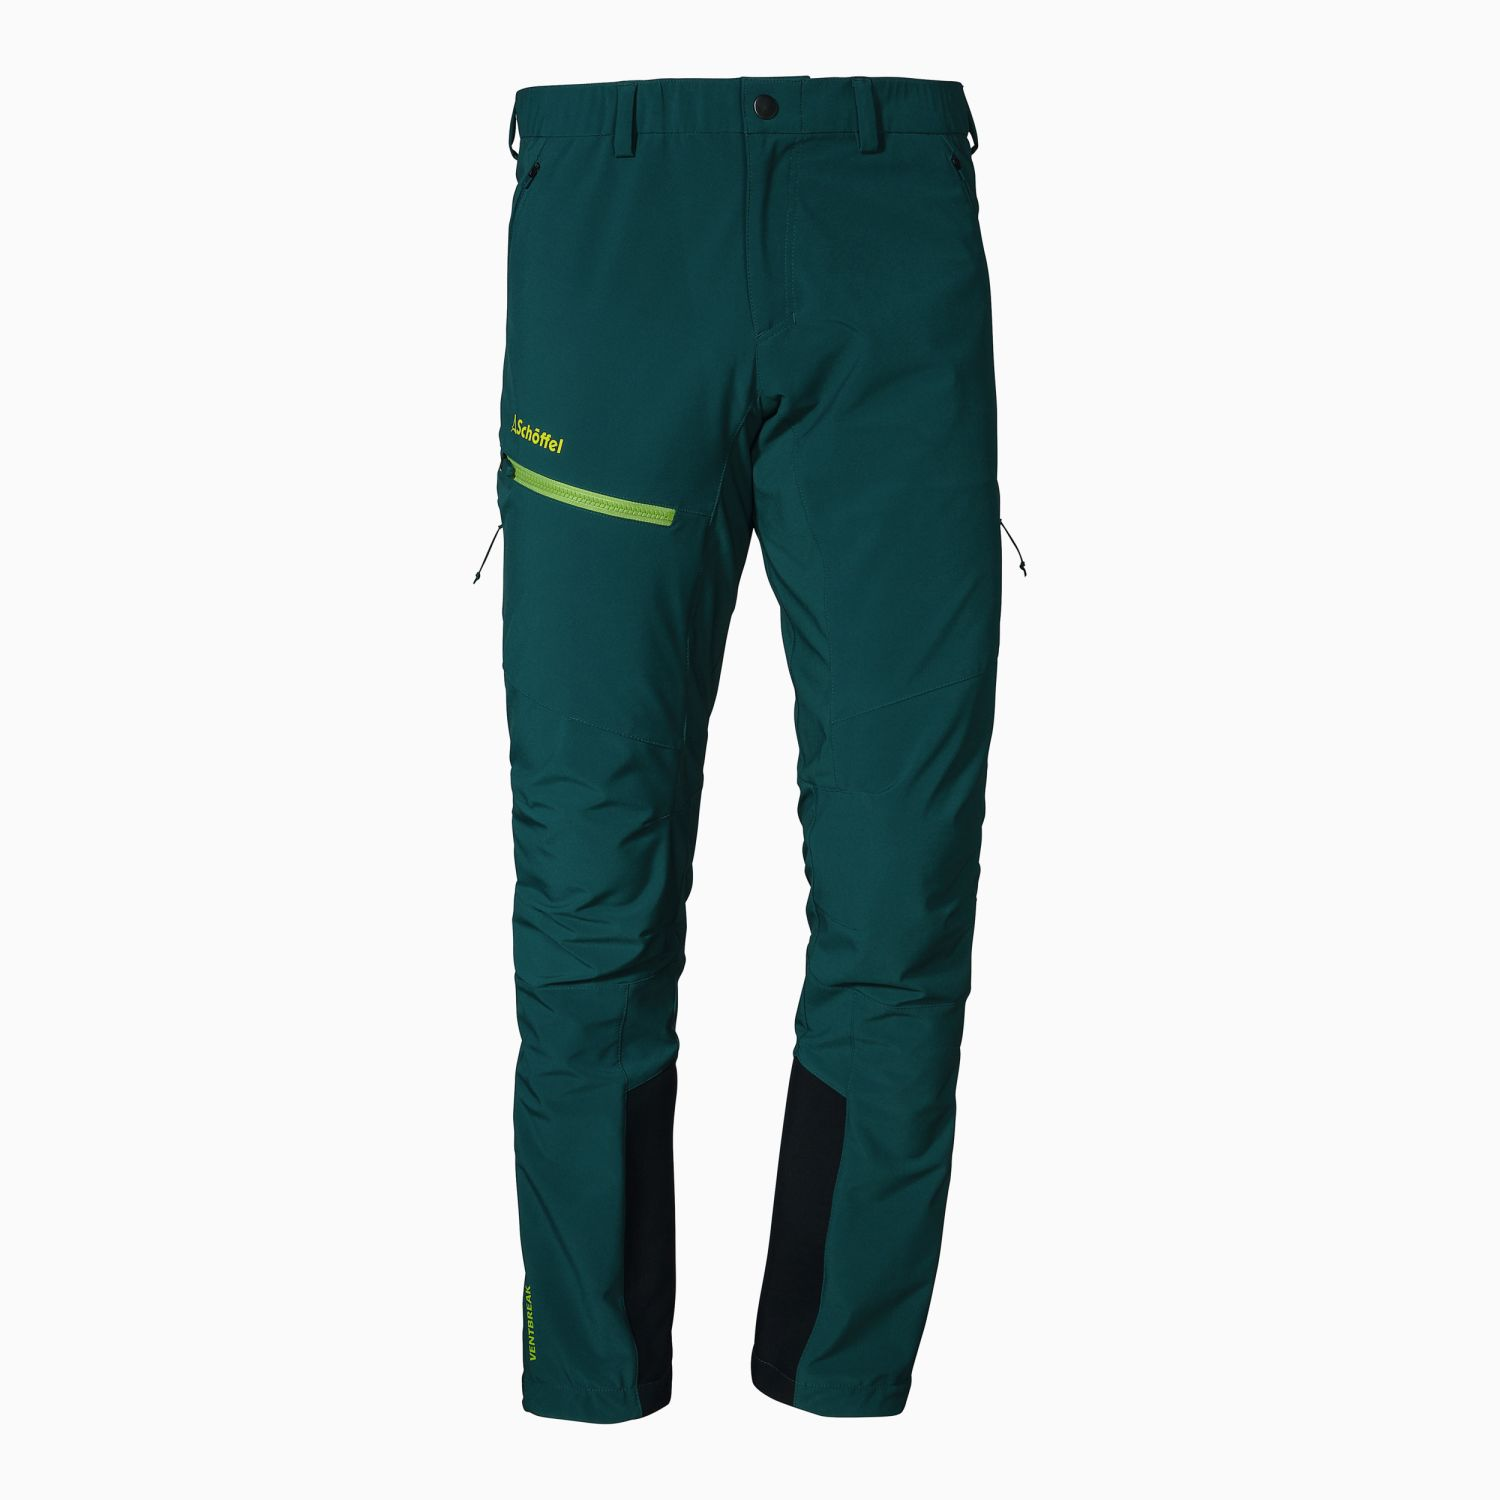 Softshell Pants Rognon M